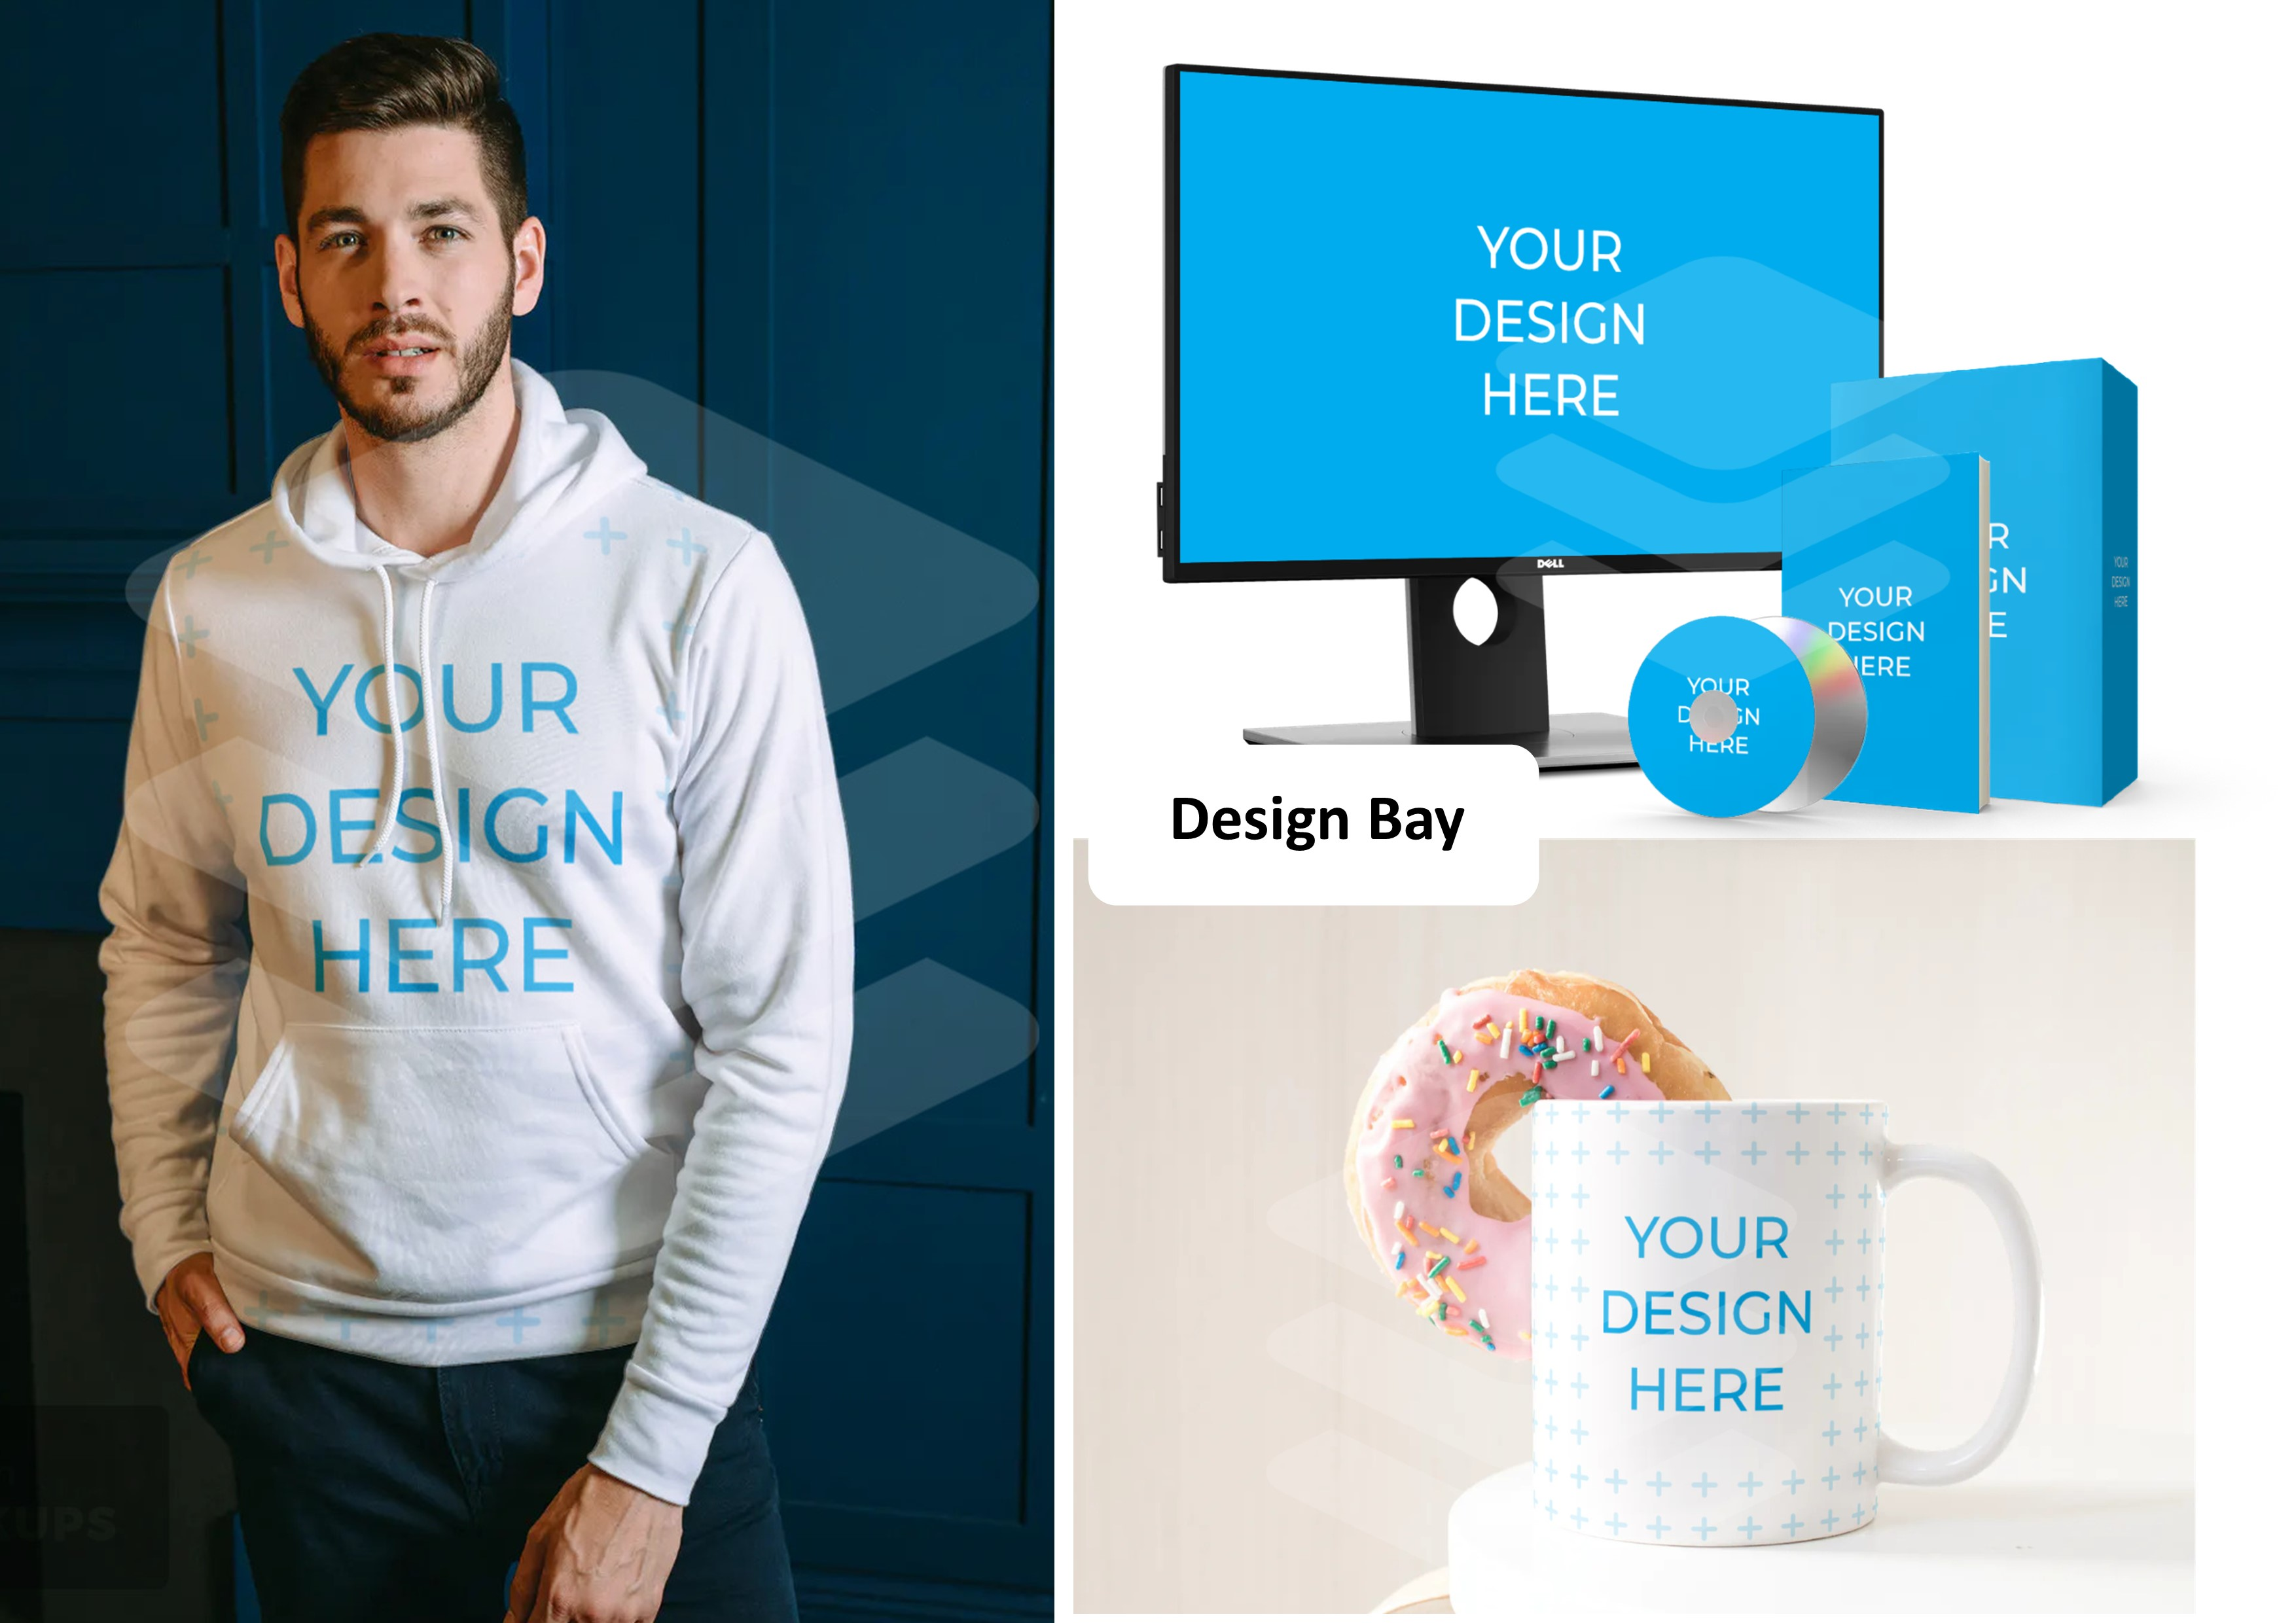 I will design upto 3 digital product mockups within 24 hours